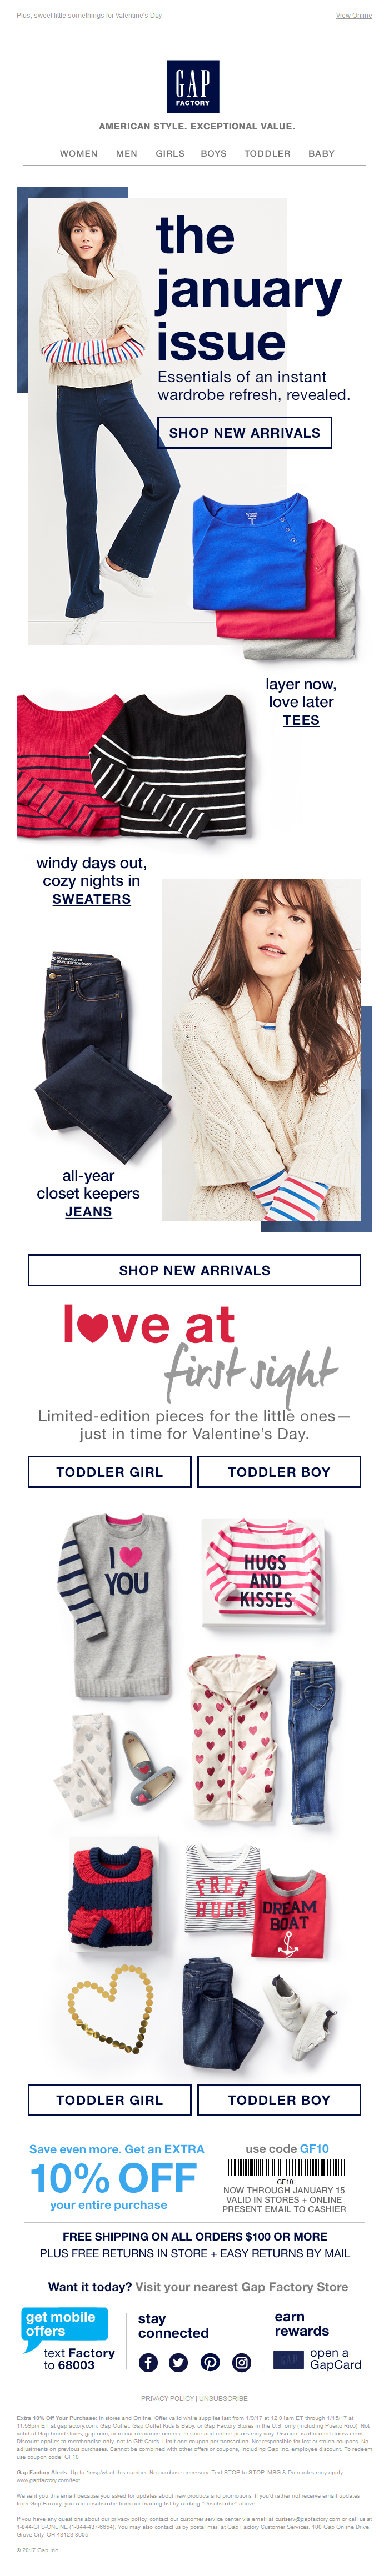 GAP - Basically everything you'll need in 2017.